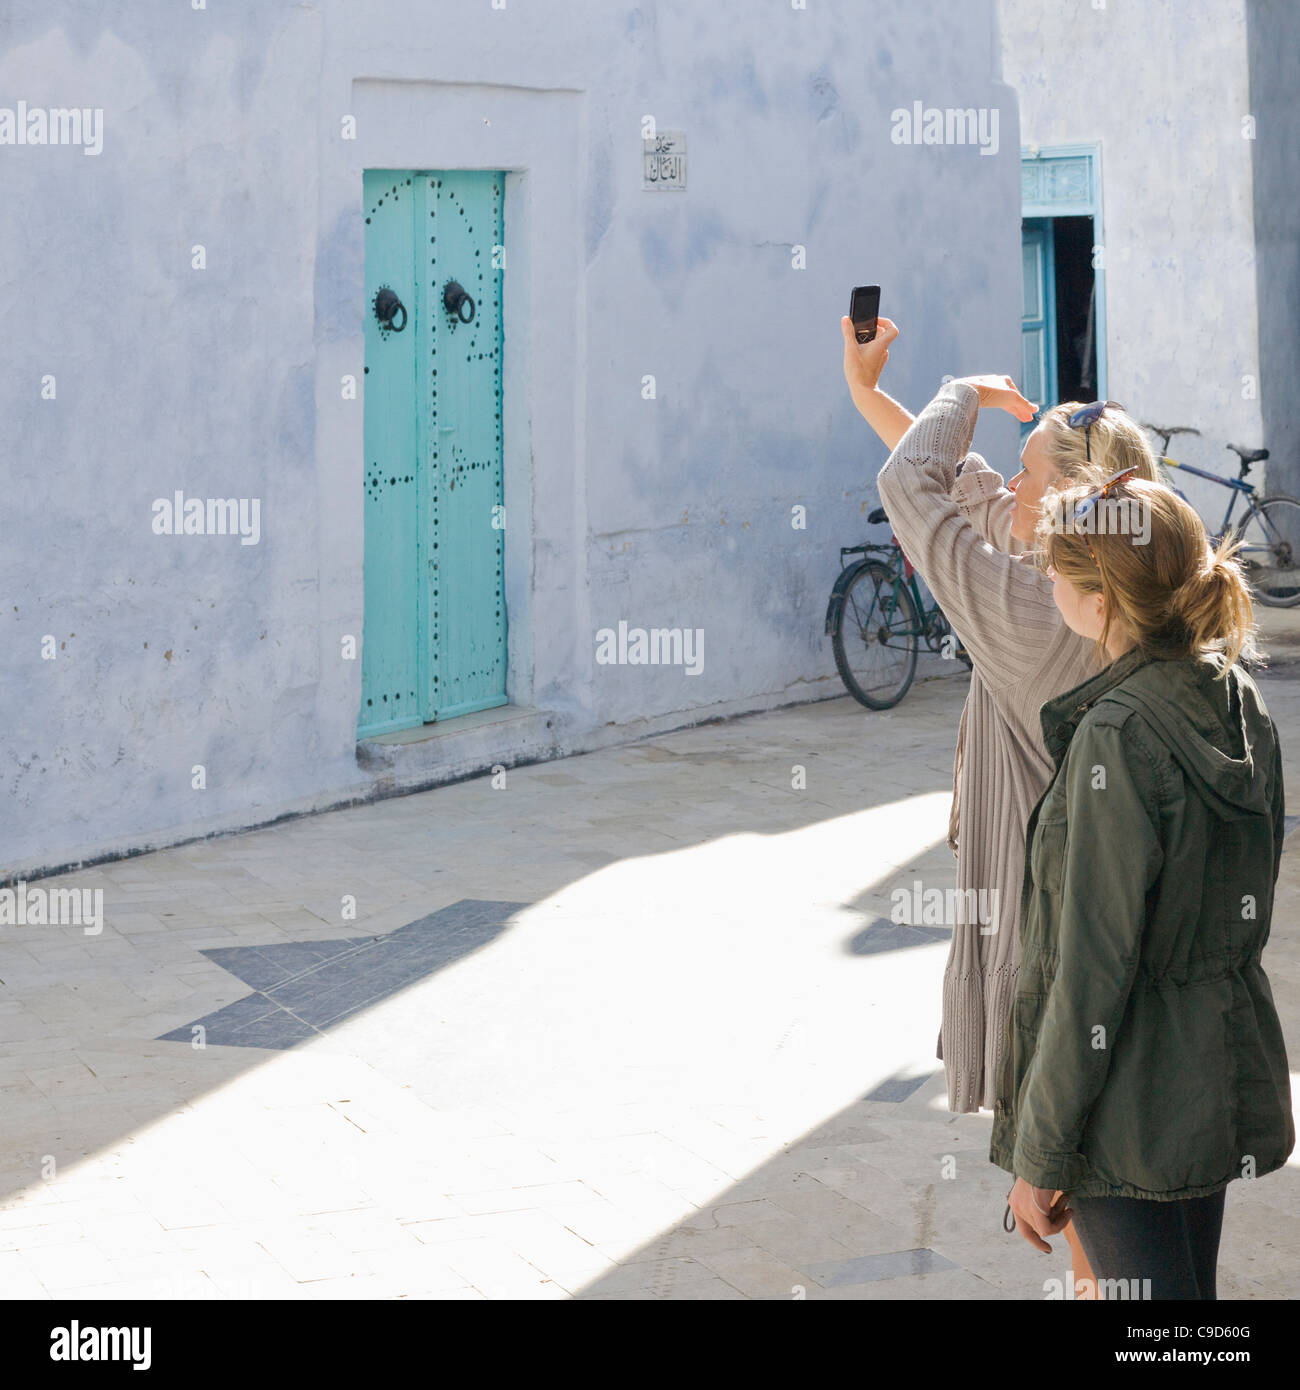 Tunisia, Kairouan, mother and daughter taking picture with cell phone - Stock Image